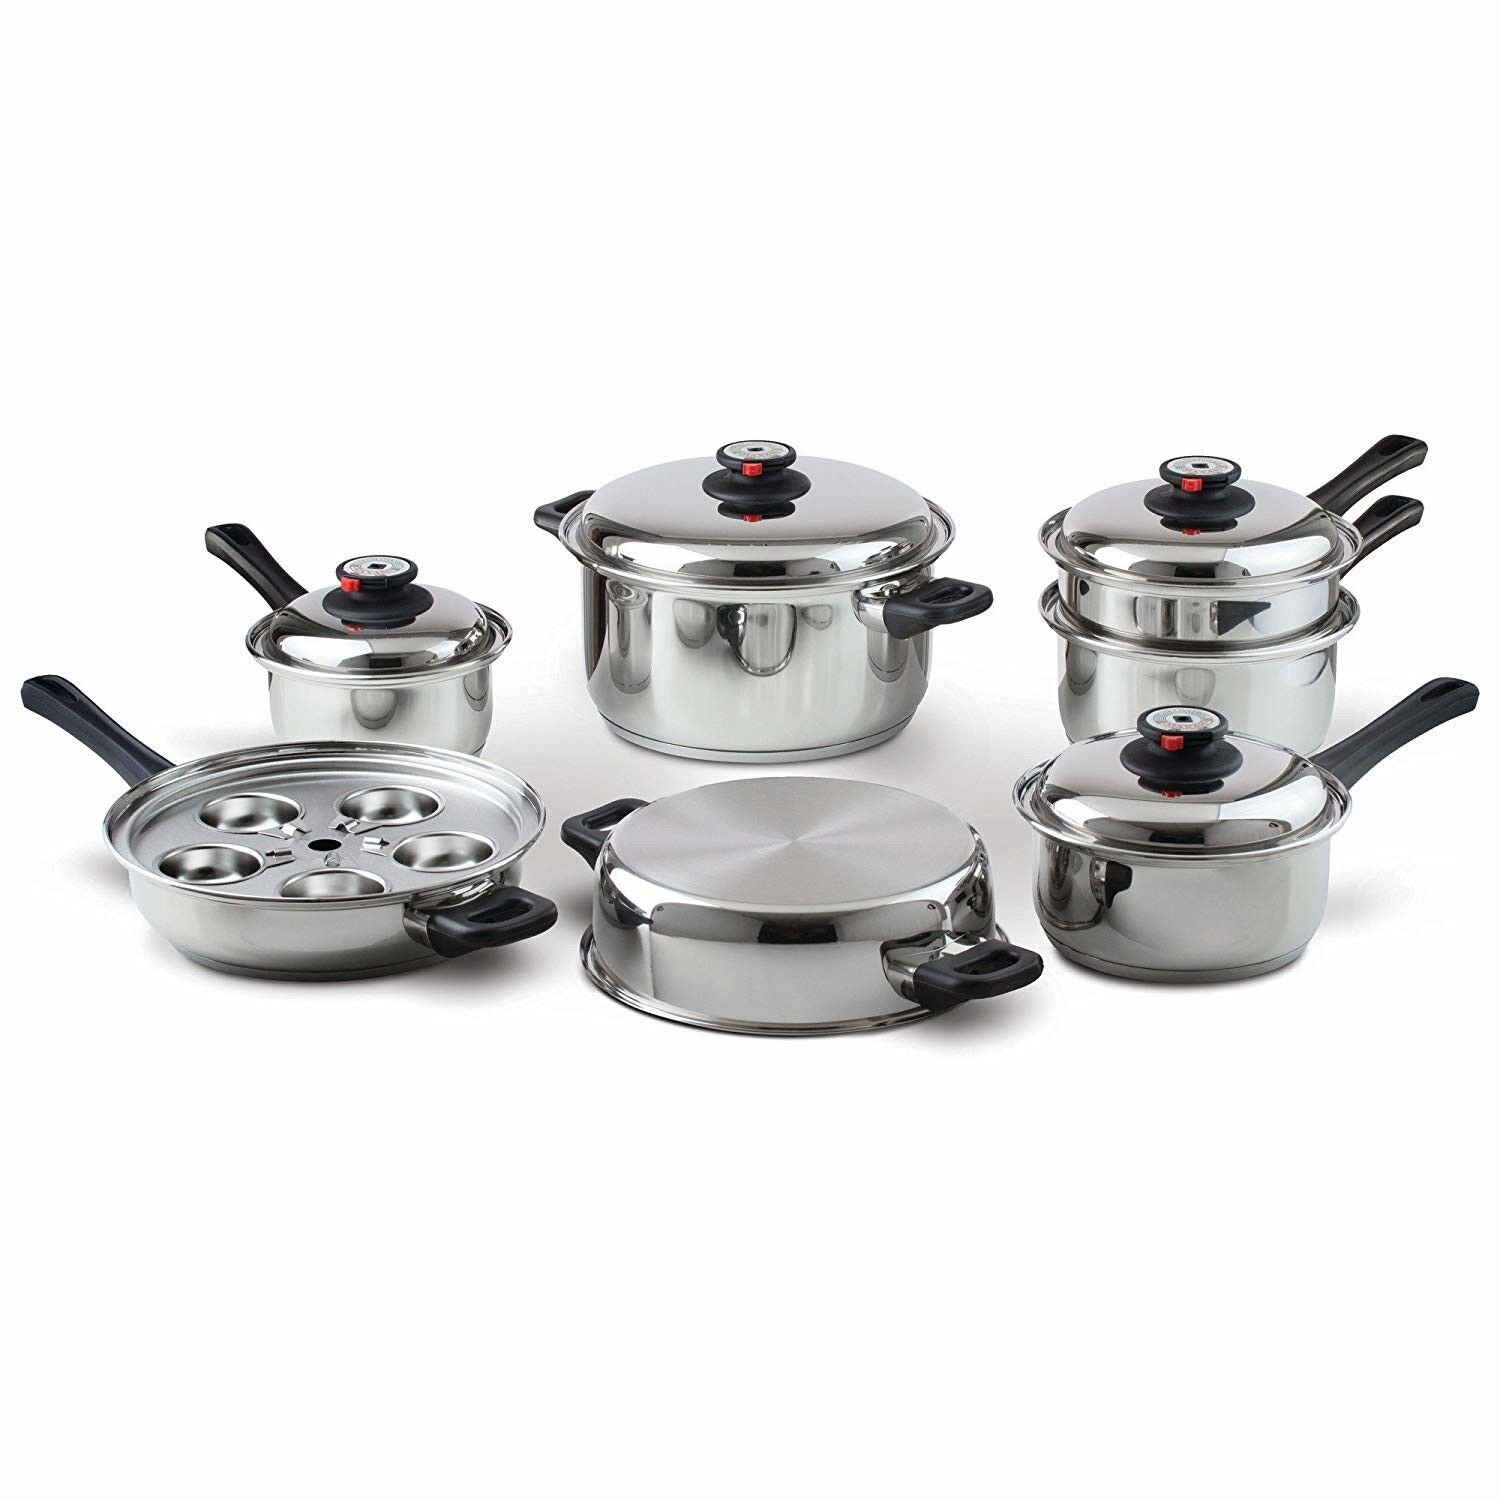 Cookware Set Surgical Stainless Steel Waterless 17 Piece Kitchen Gift New